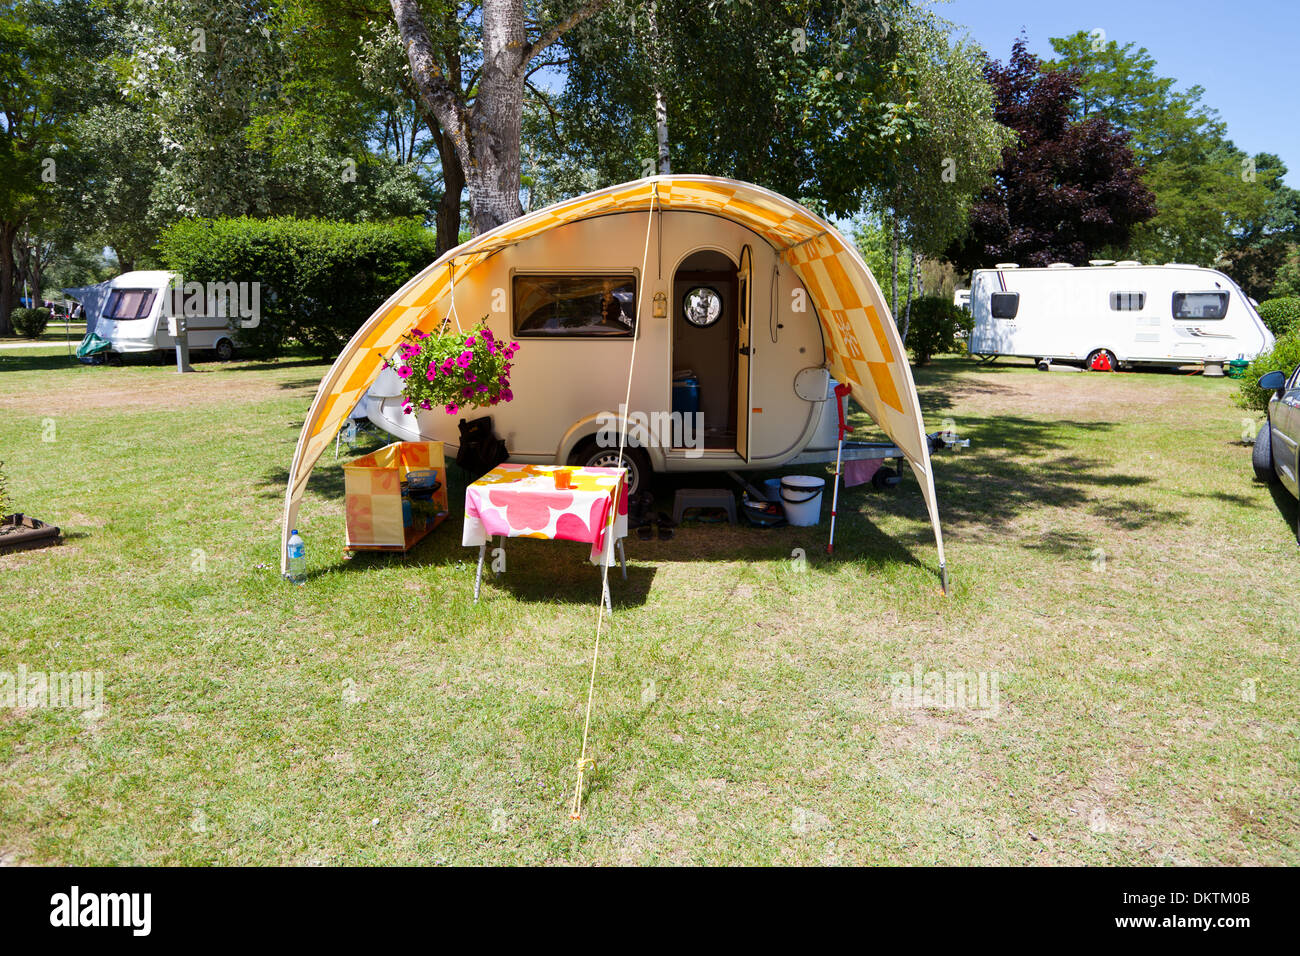 Small TAB Camping Trailer Caravan With Awning At Le Moulin Fort Campsite In The Loire Valley